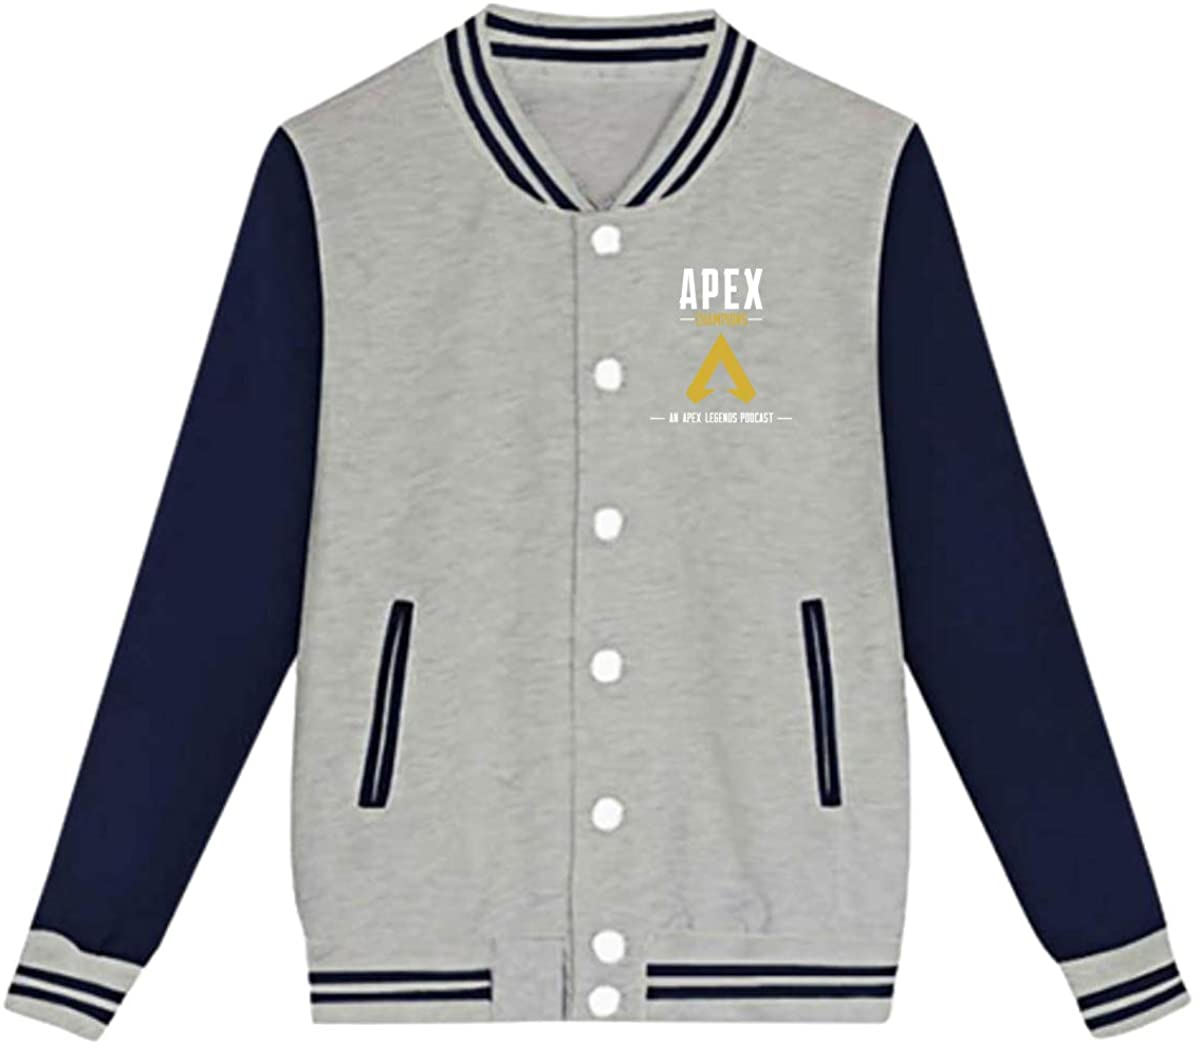 APEX Legends Hero Unisex Youth Boys and Girls Sweatshirt Baseball Uniform Jacket Sport Coat